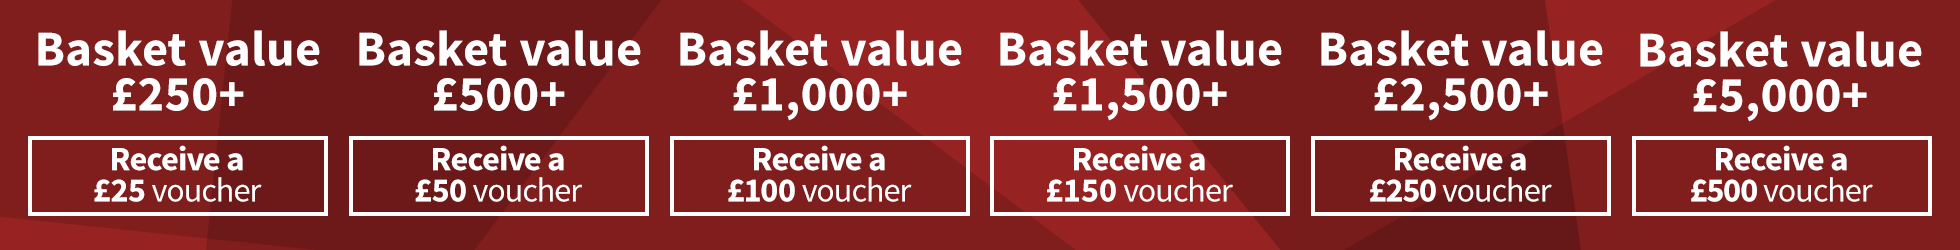 Up to £500 Vouchers Now On